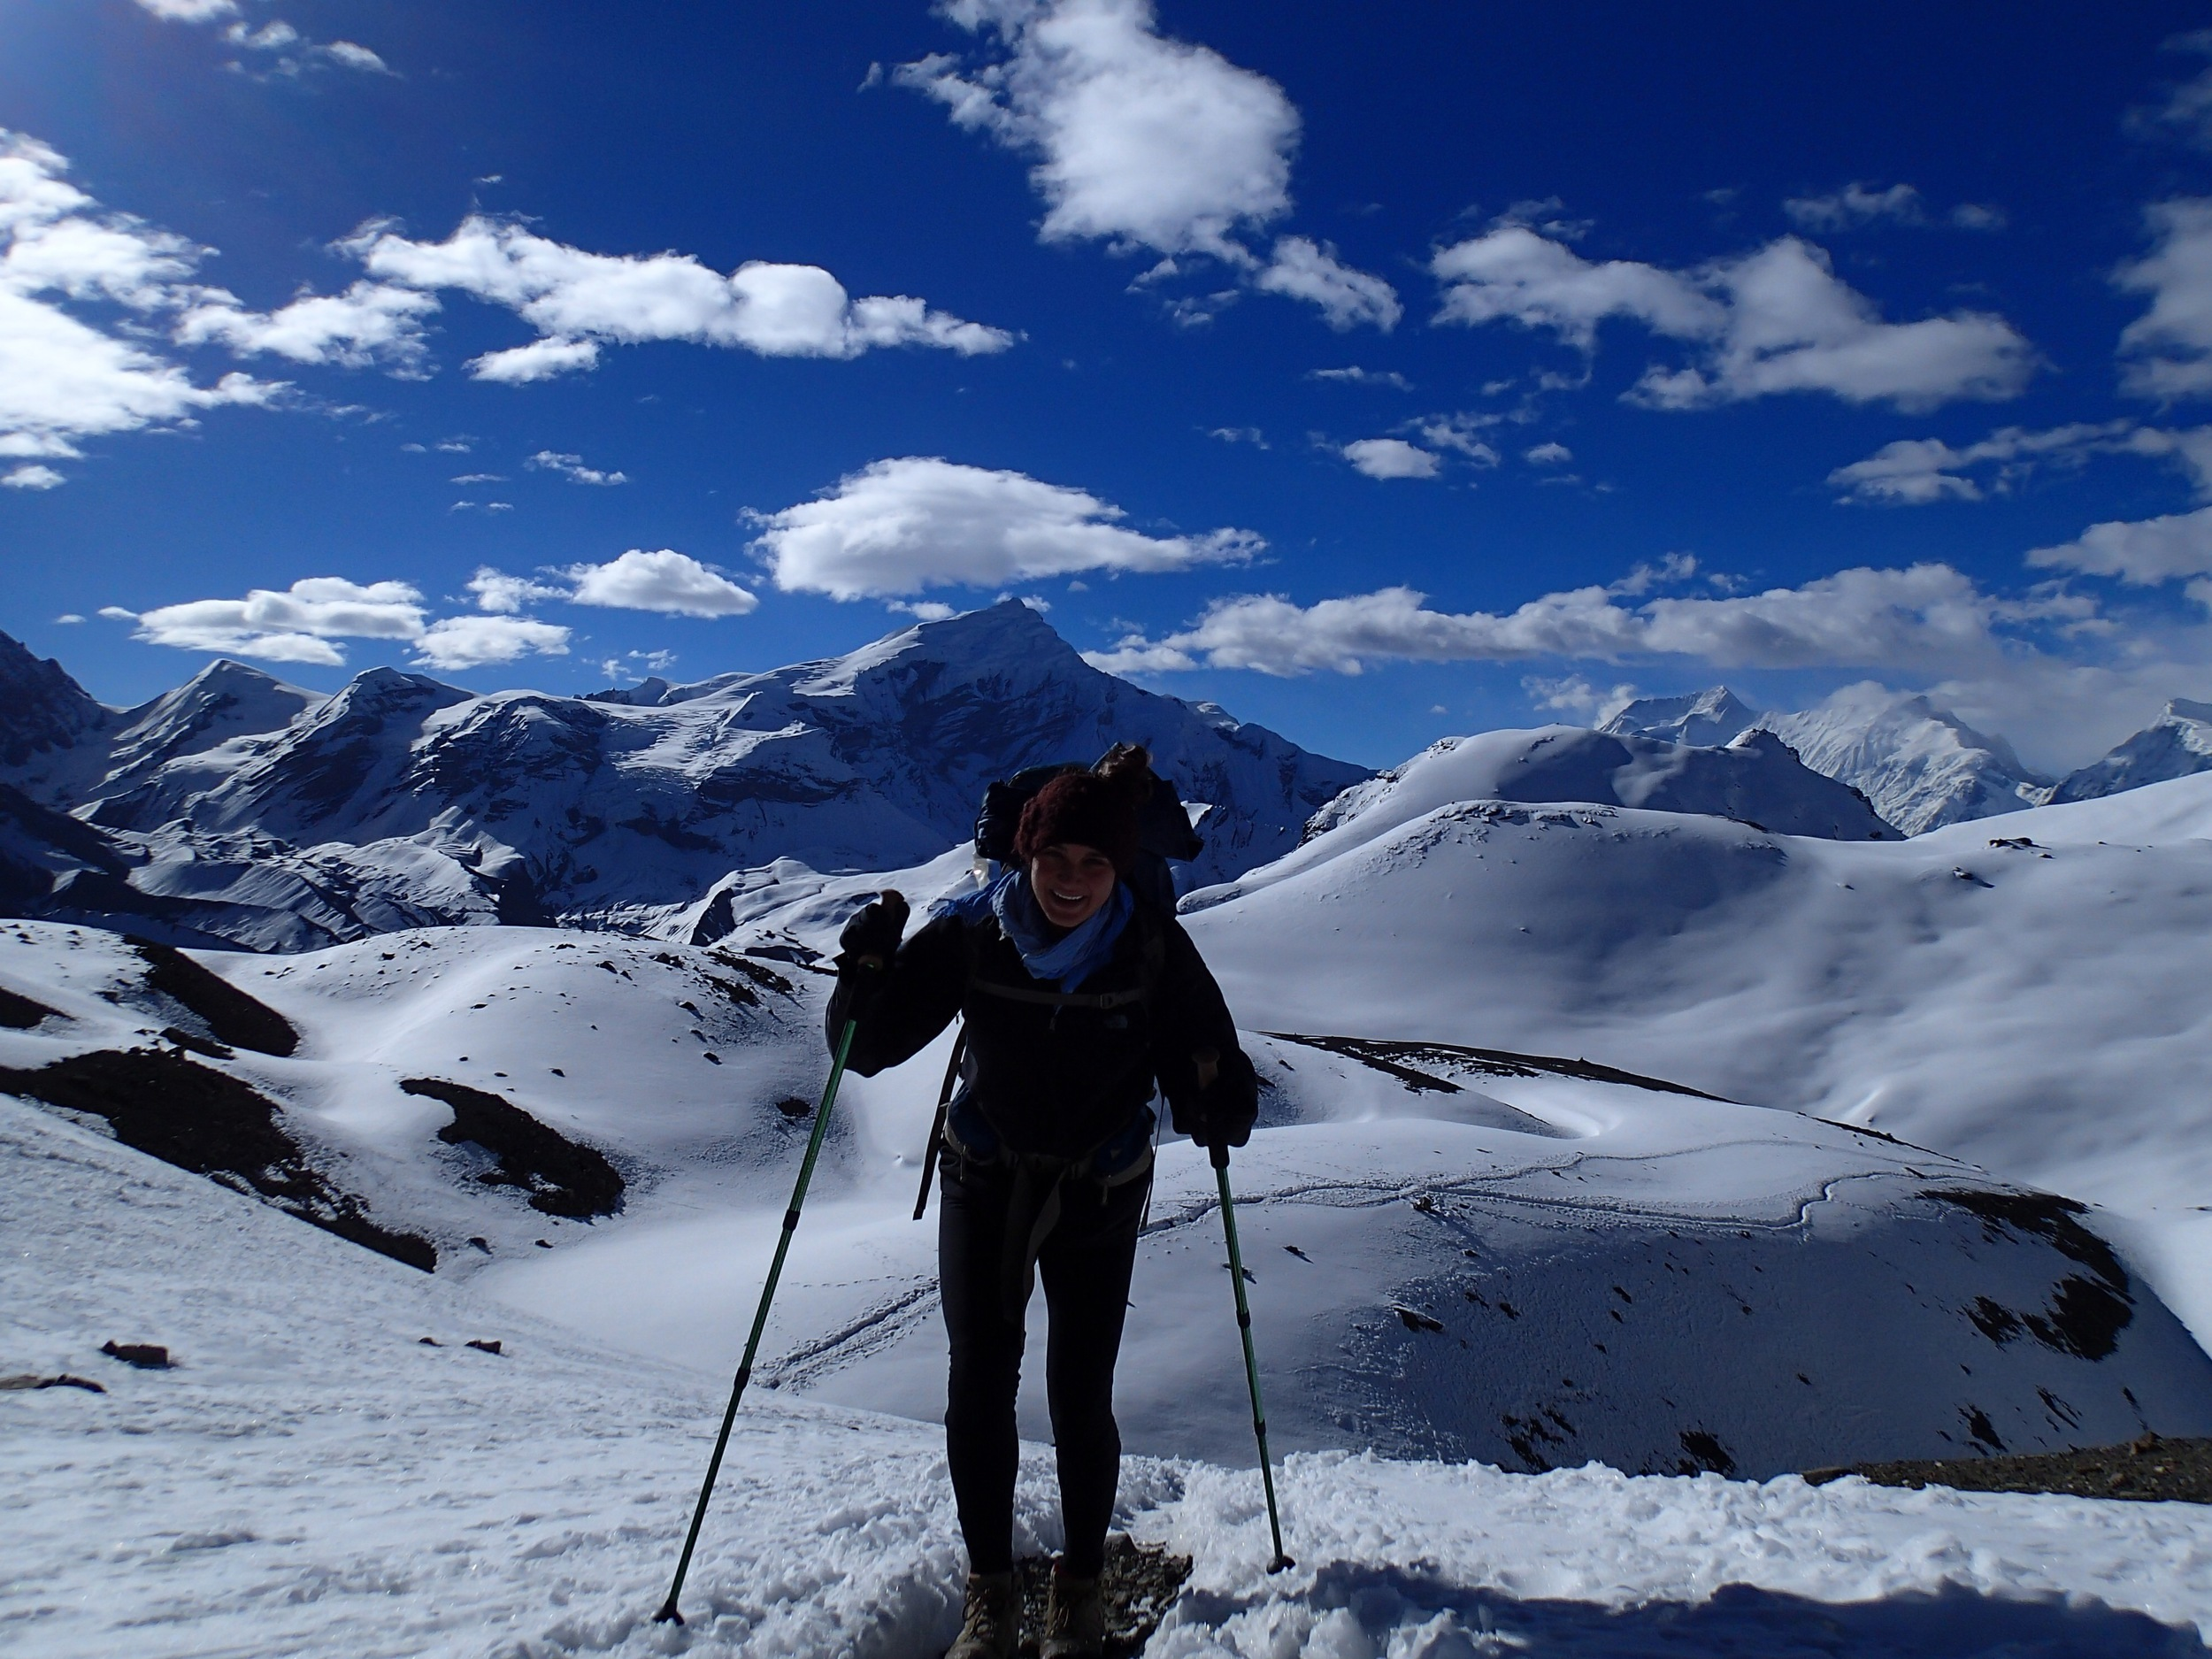 On top of it all: the Annapurna trek through the highest mountain pass in the world. Summer 2013.